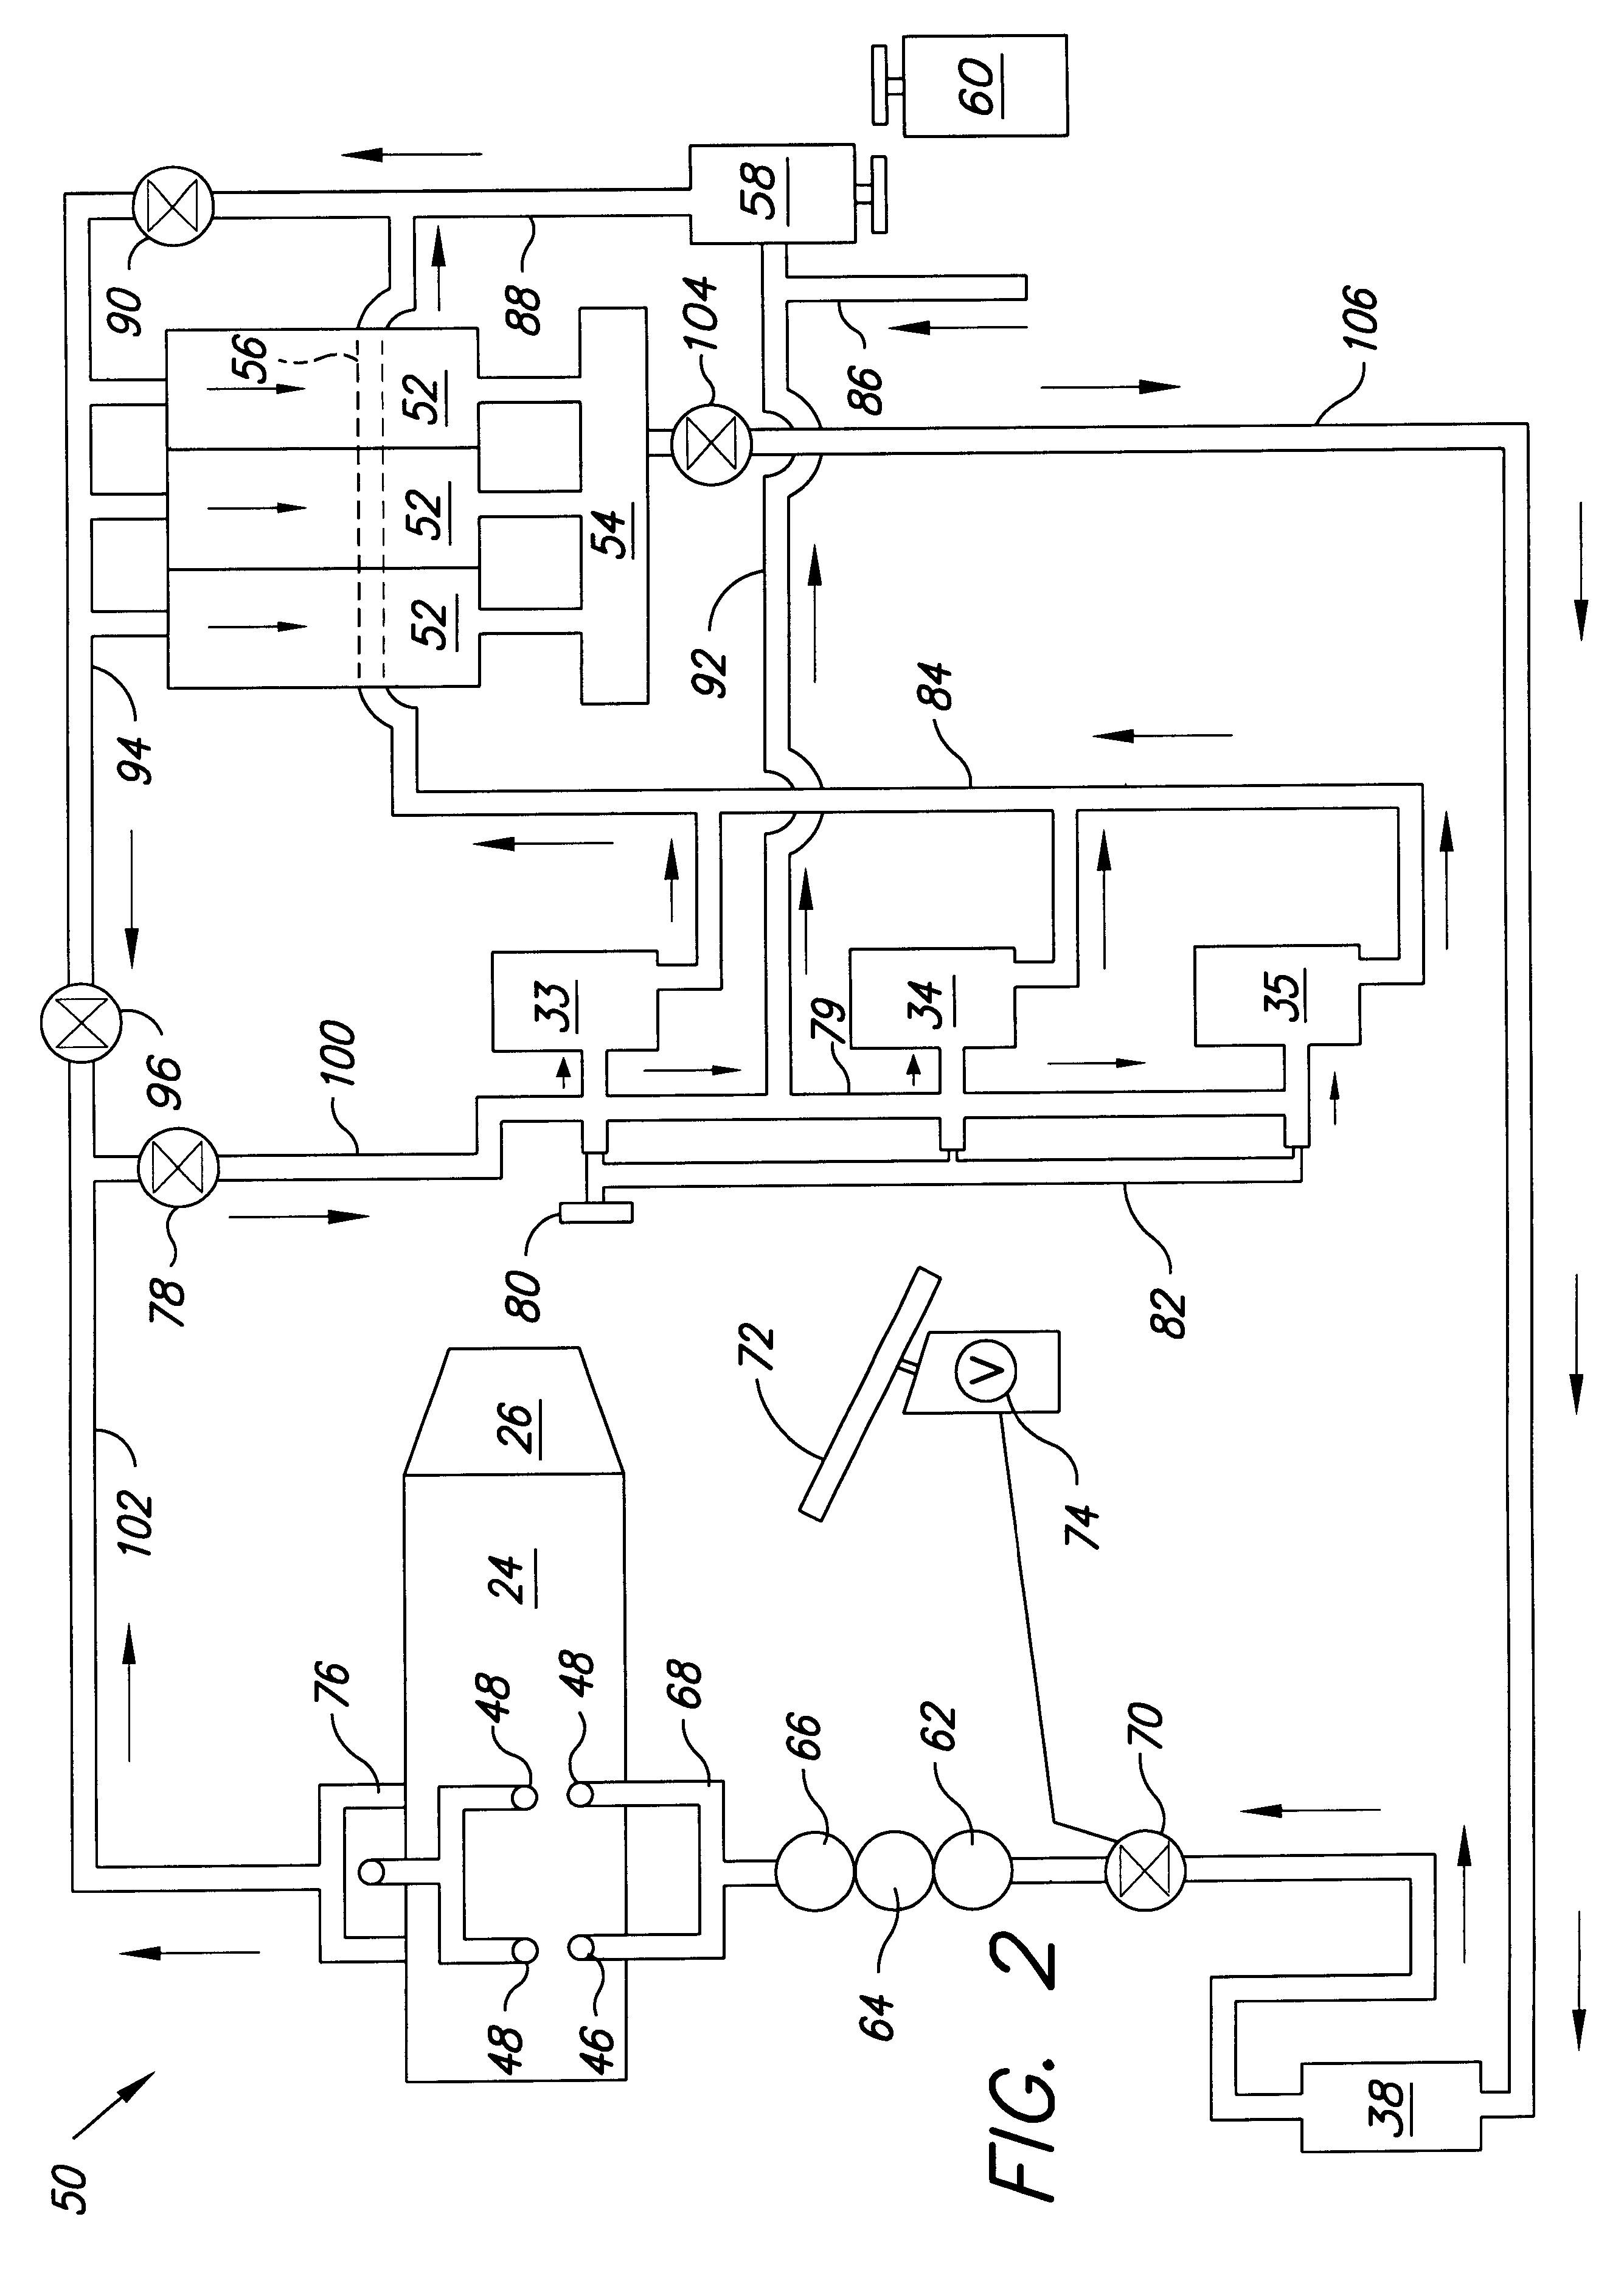 Pictures Of Compressed Air Drawing Compressor Wiring Diagram Makita Mac2400 Hitachi Ec12 Patent Us6311797 Self Contained System